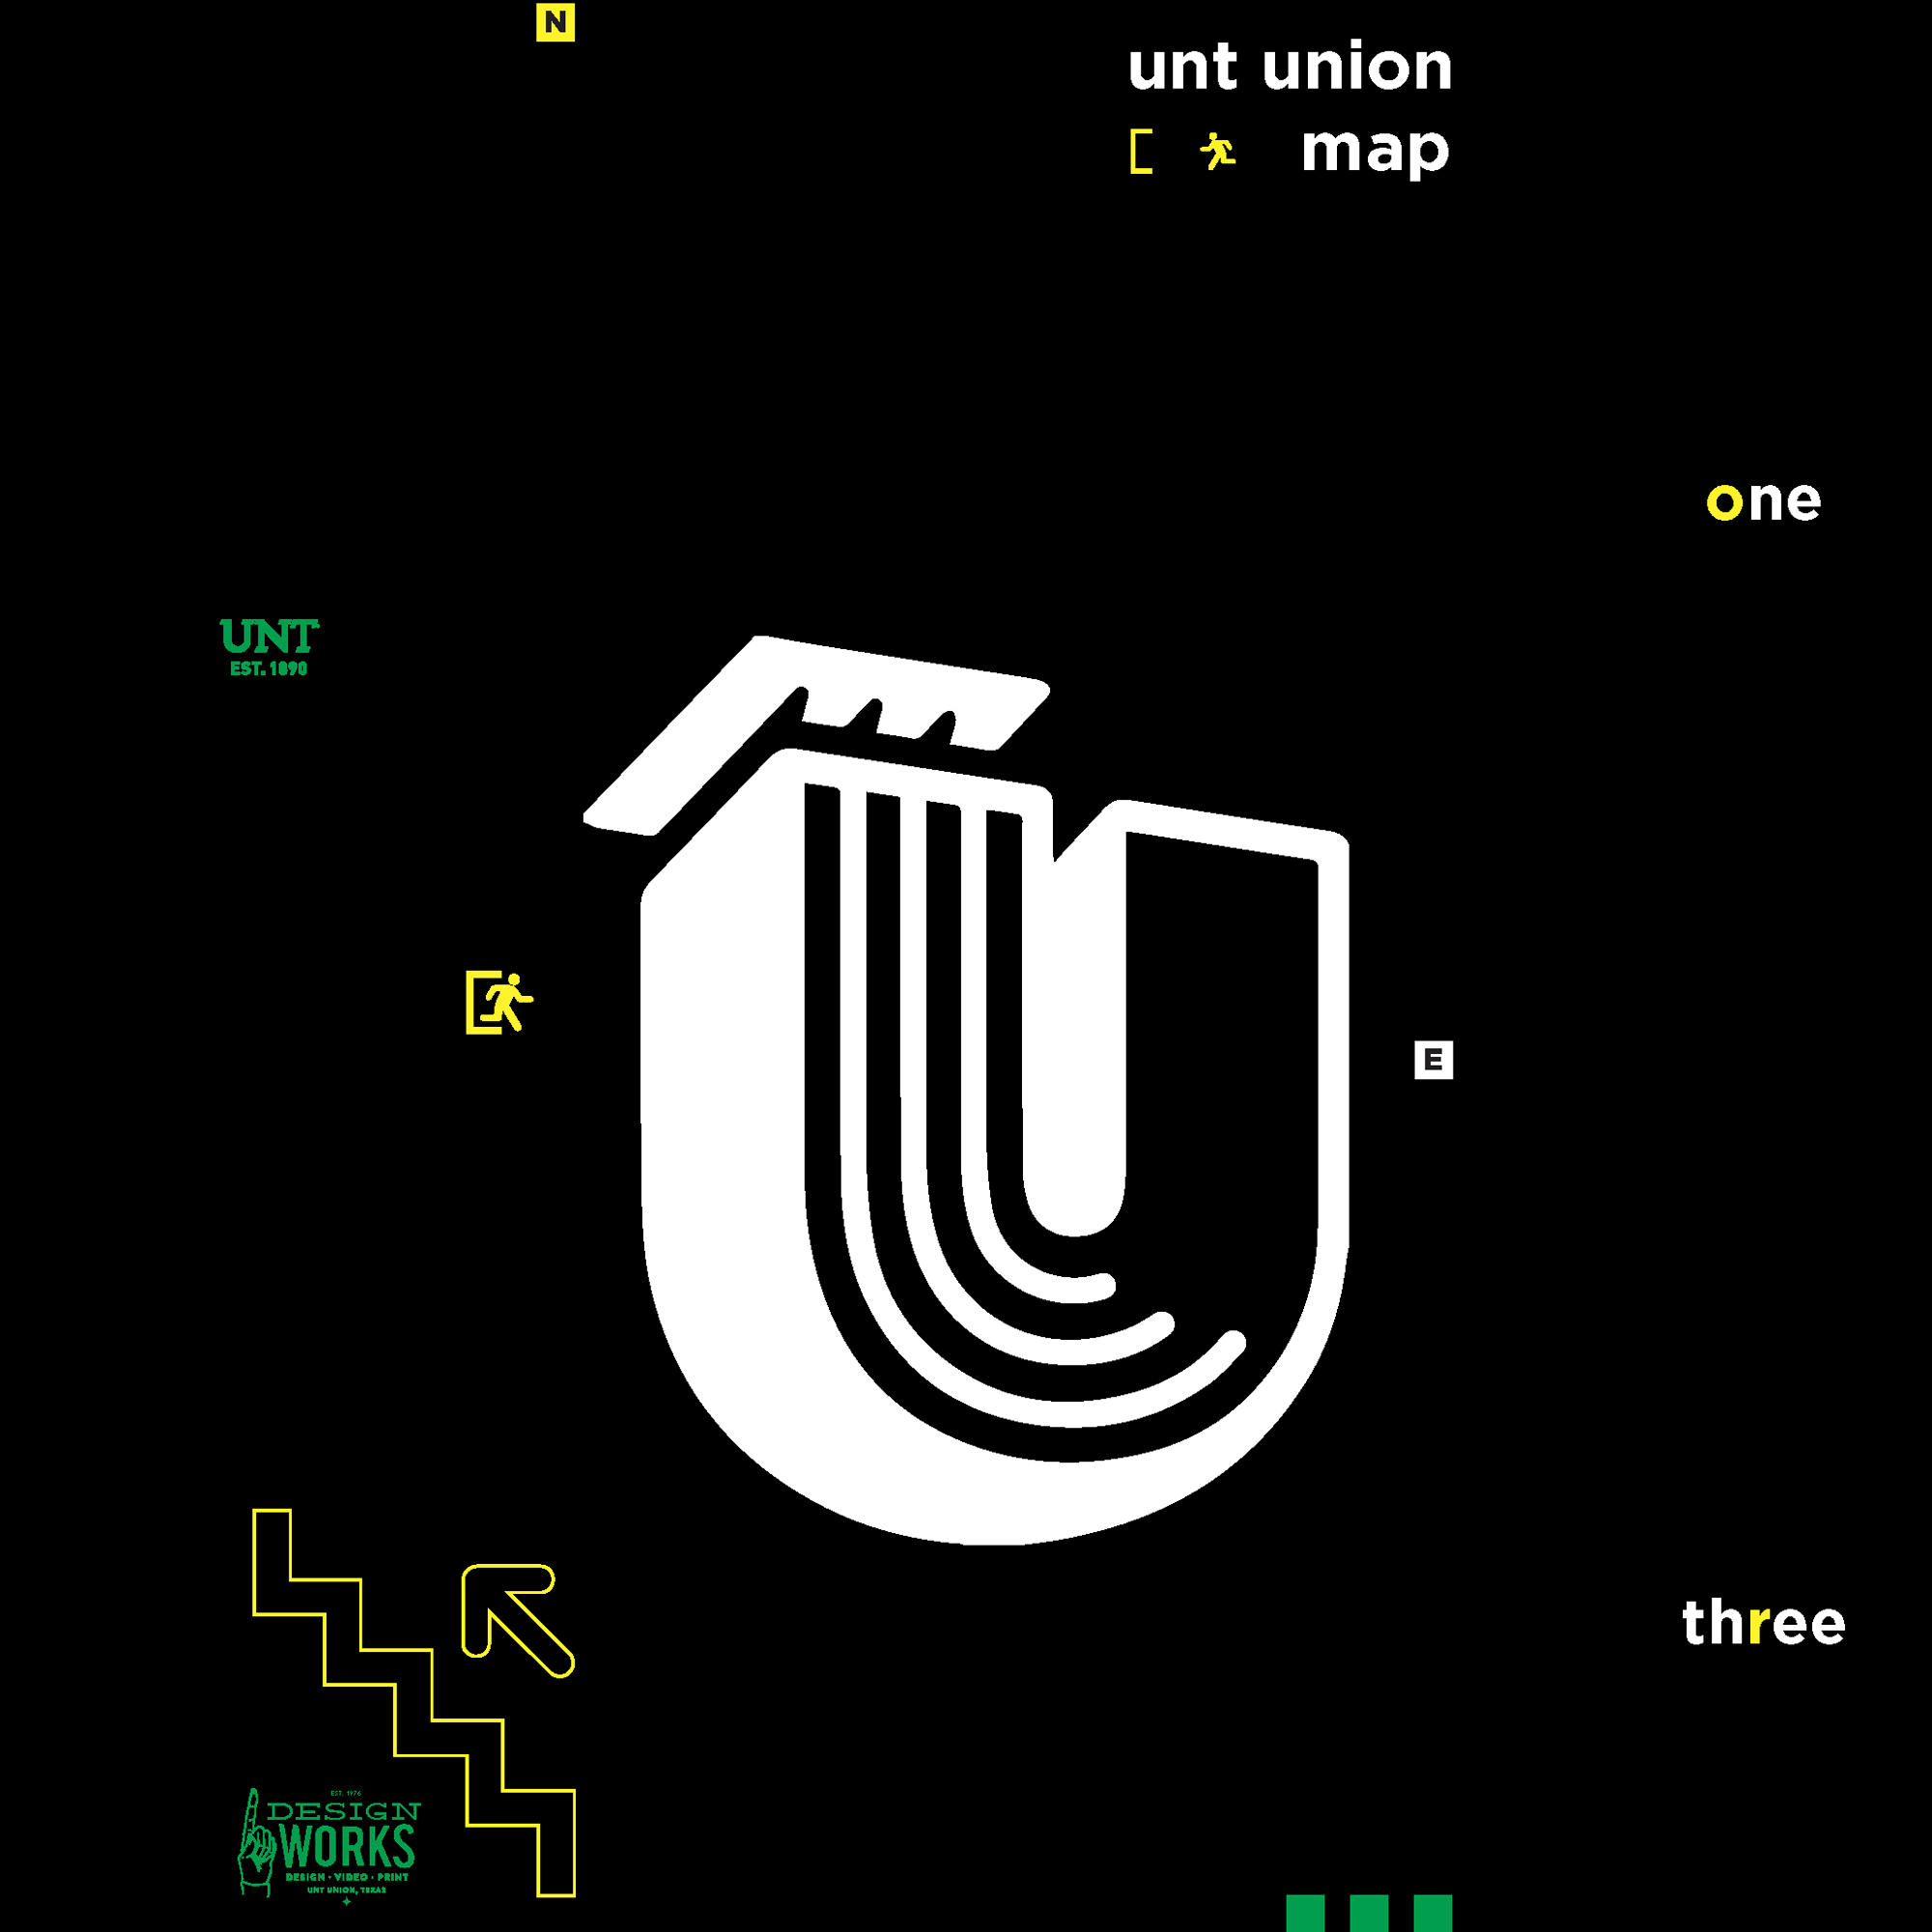 link to UNT Union map